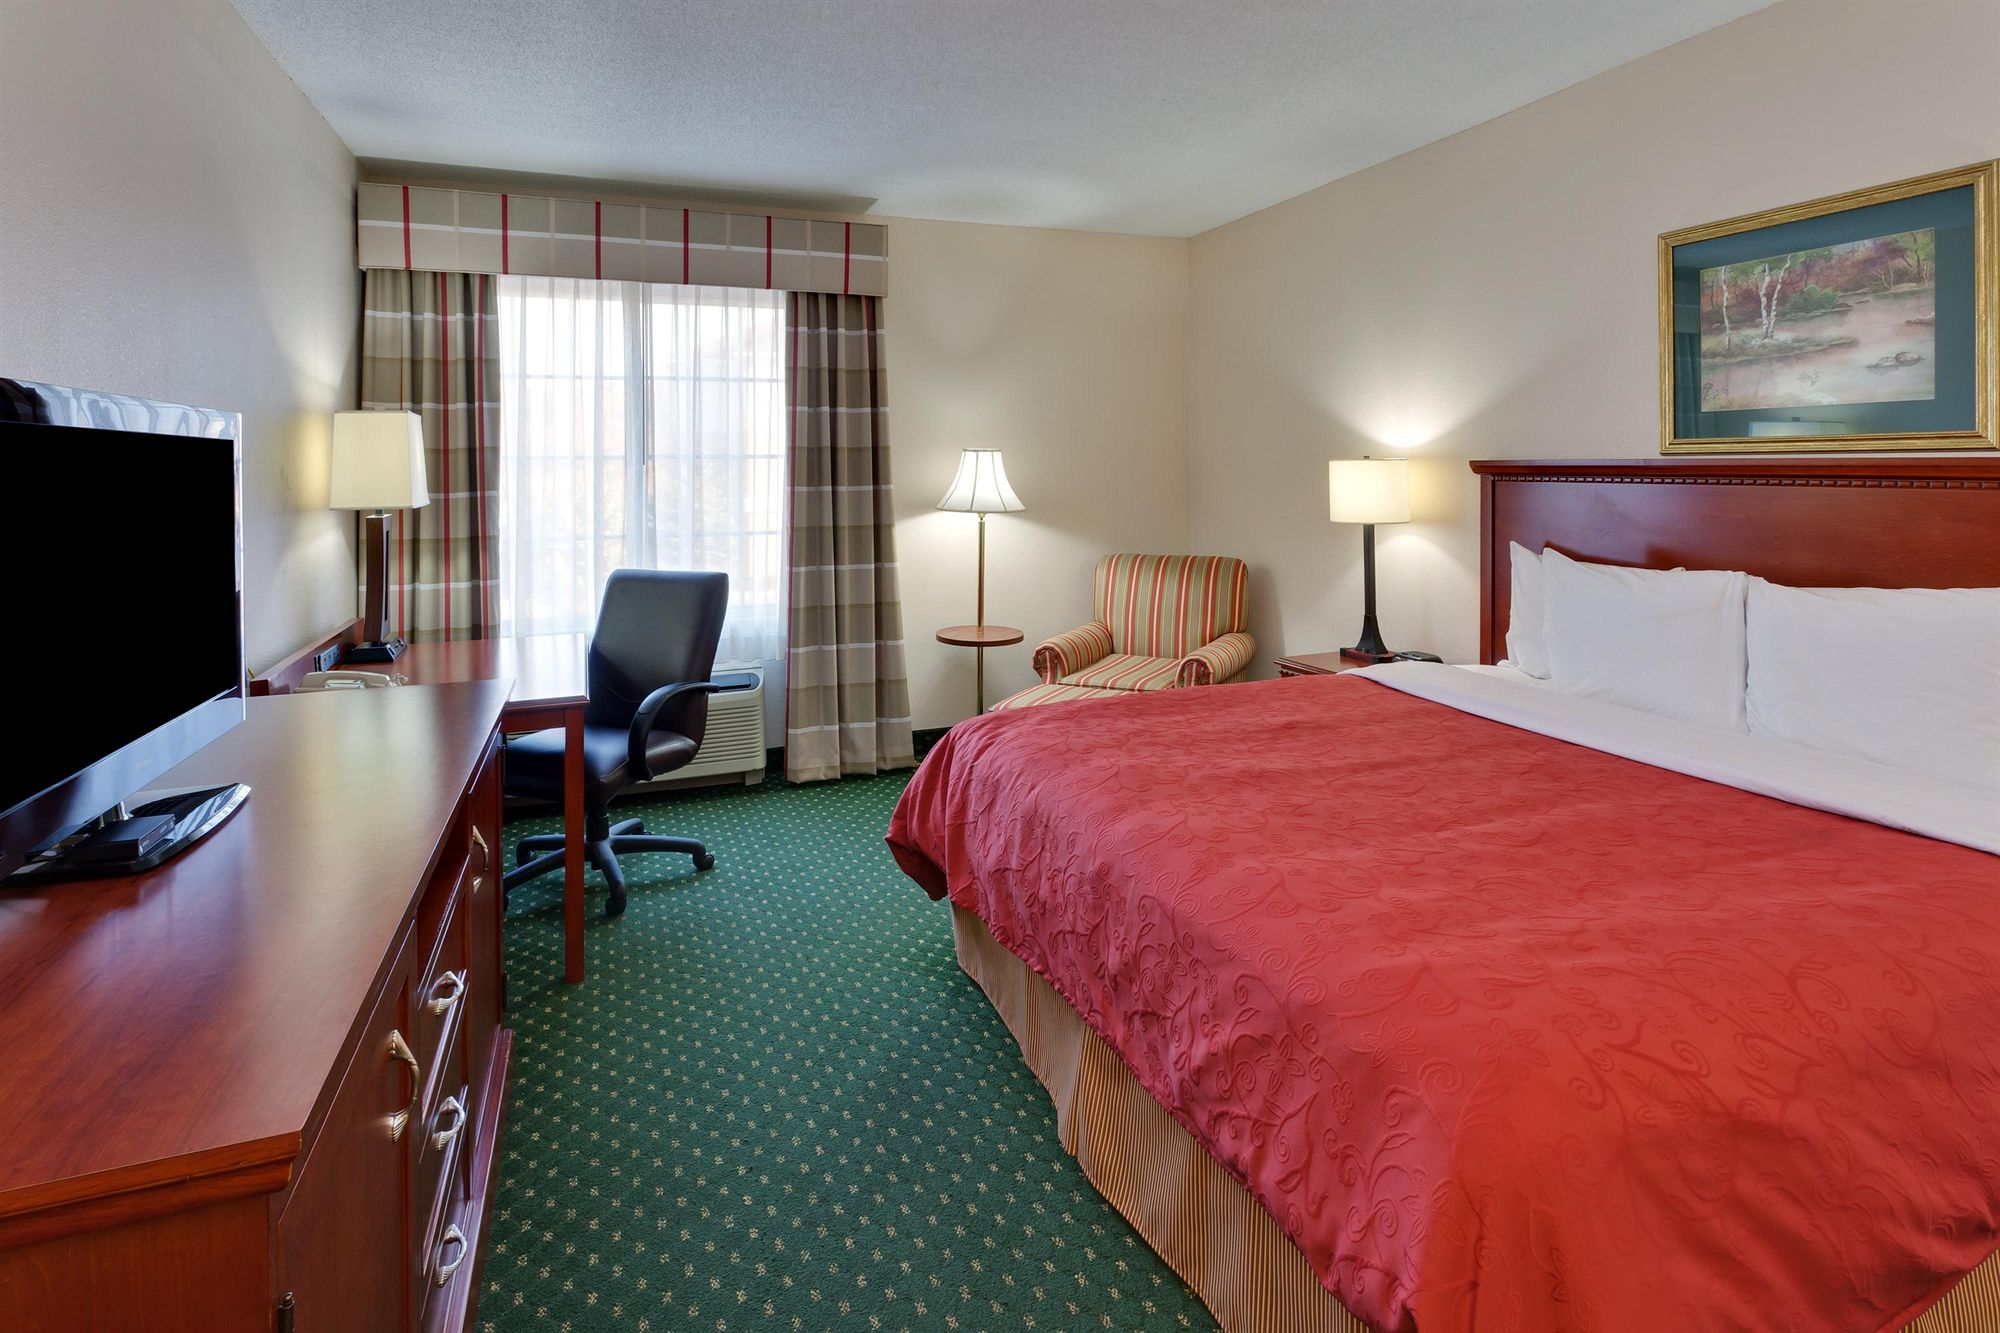 LaQuinta Inn & Suites in Powell, TN